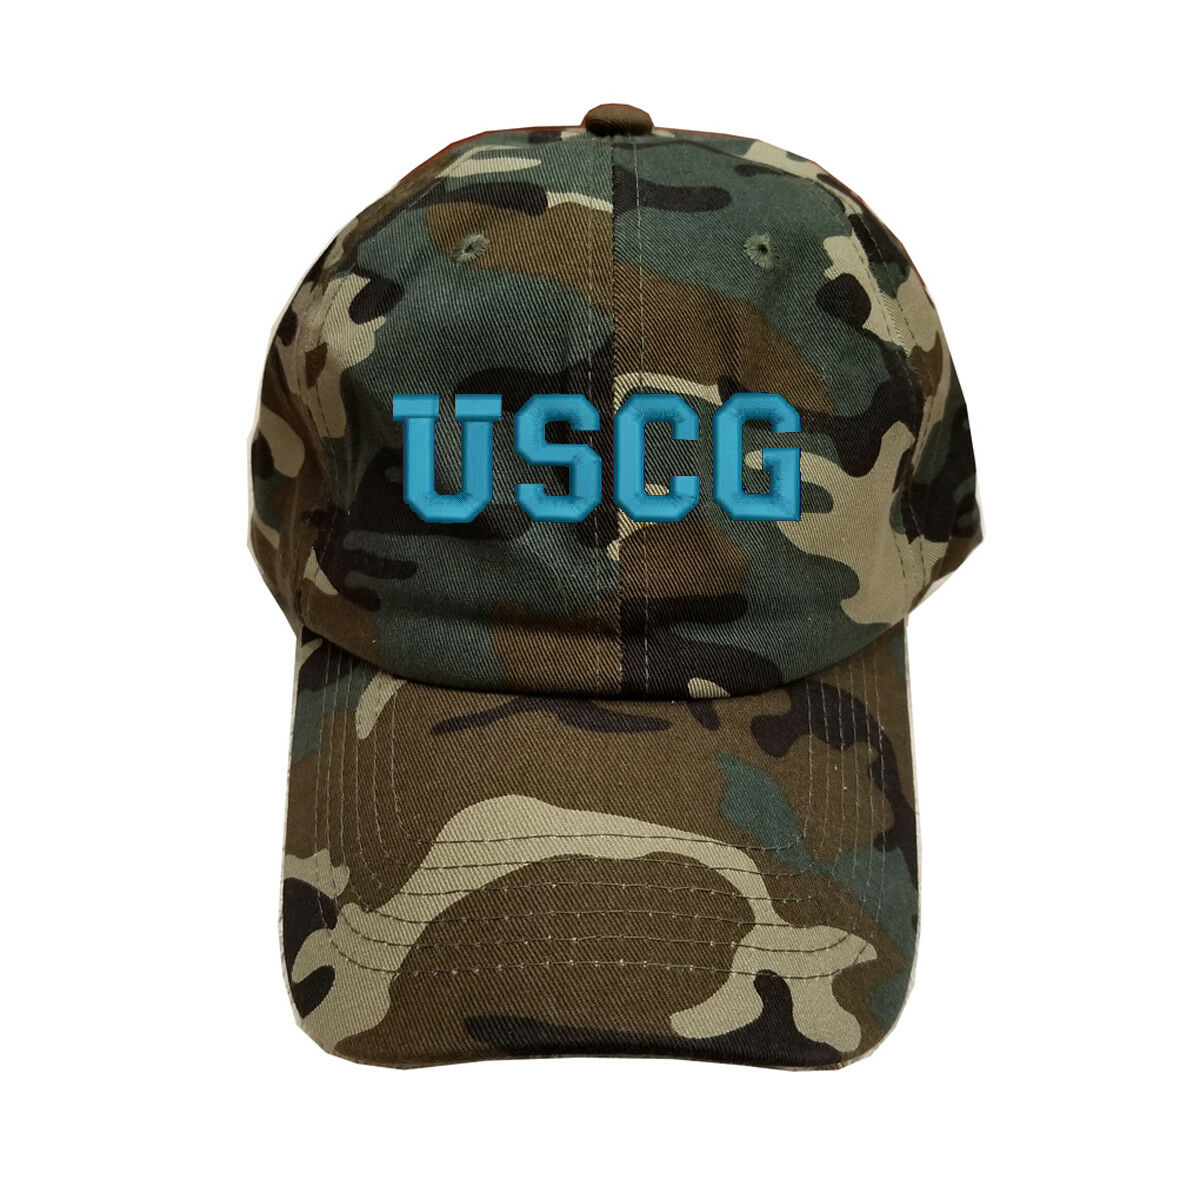 COTTON GREEN CAMO CAMOUFLAGE USAF USCG U.S. CAP COAST GUARD BLUE TEXT CAP U.S. HAT adc185